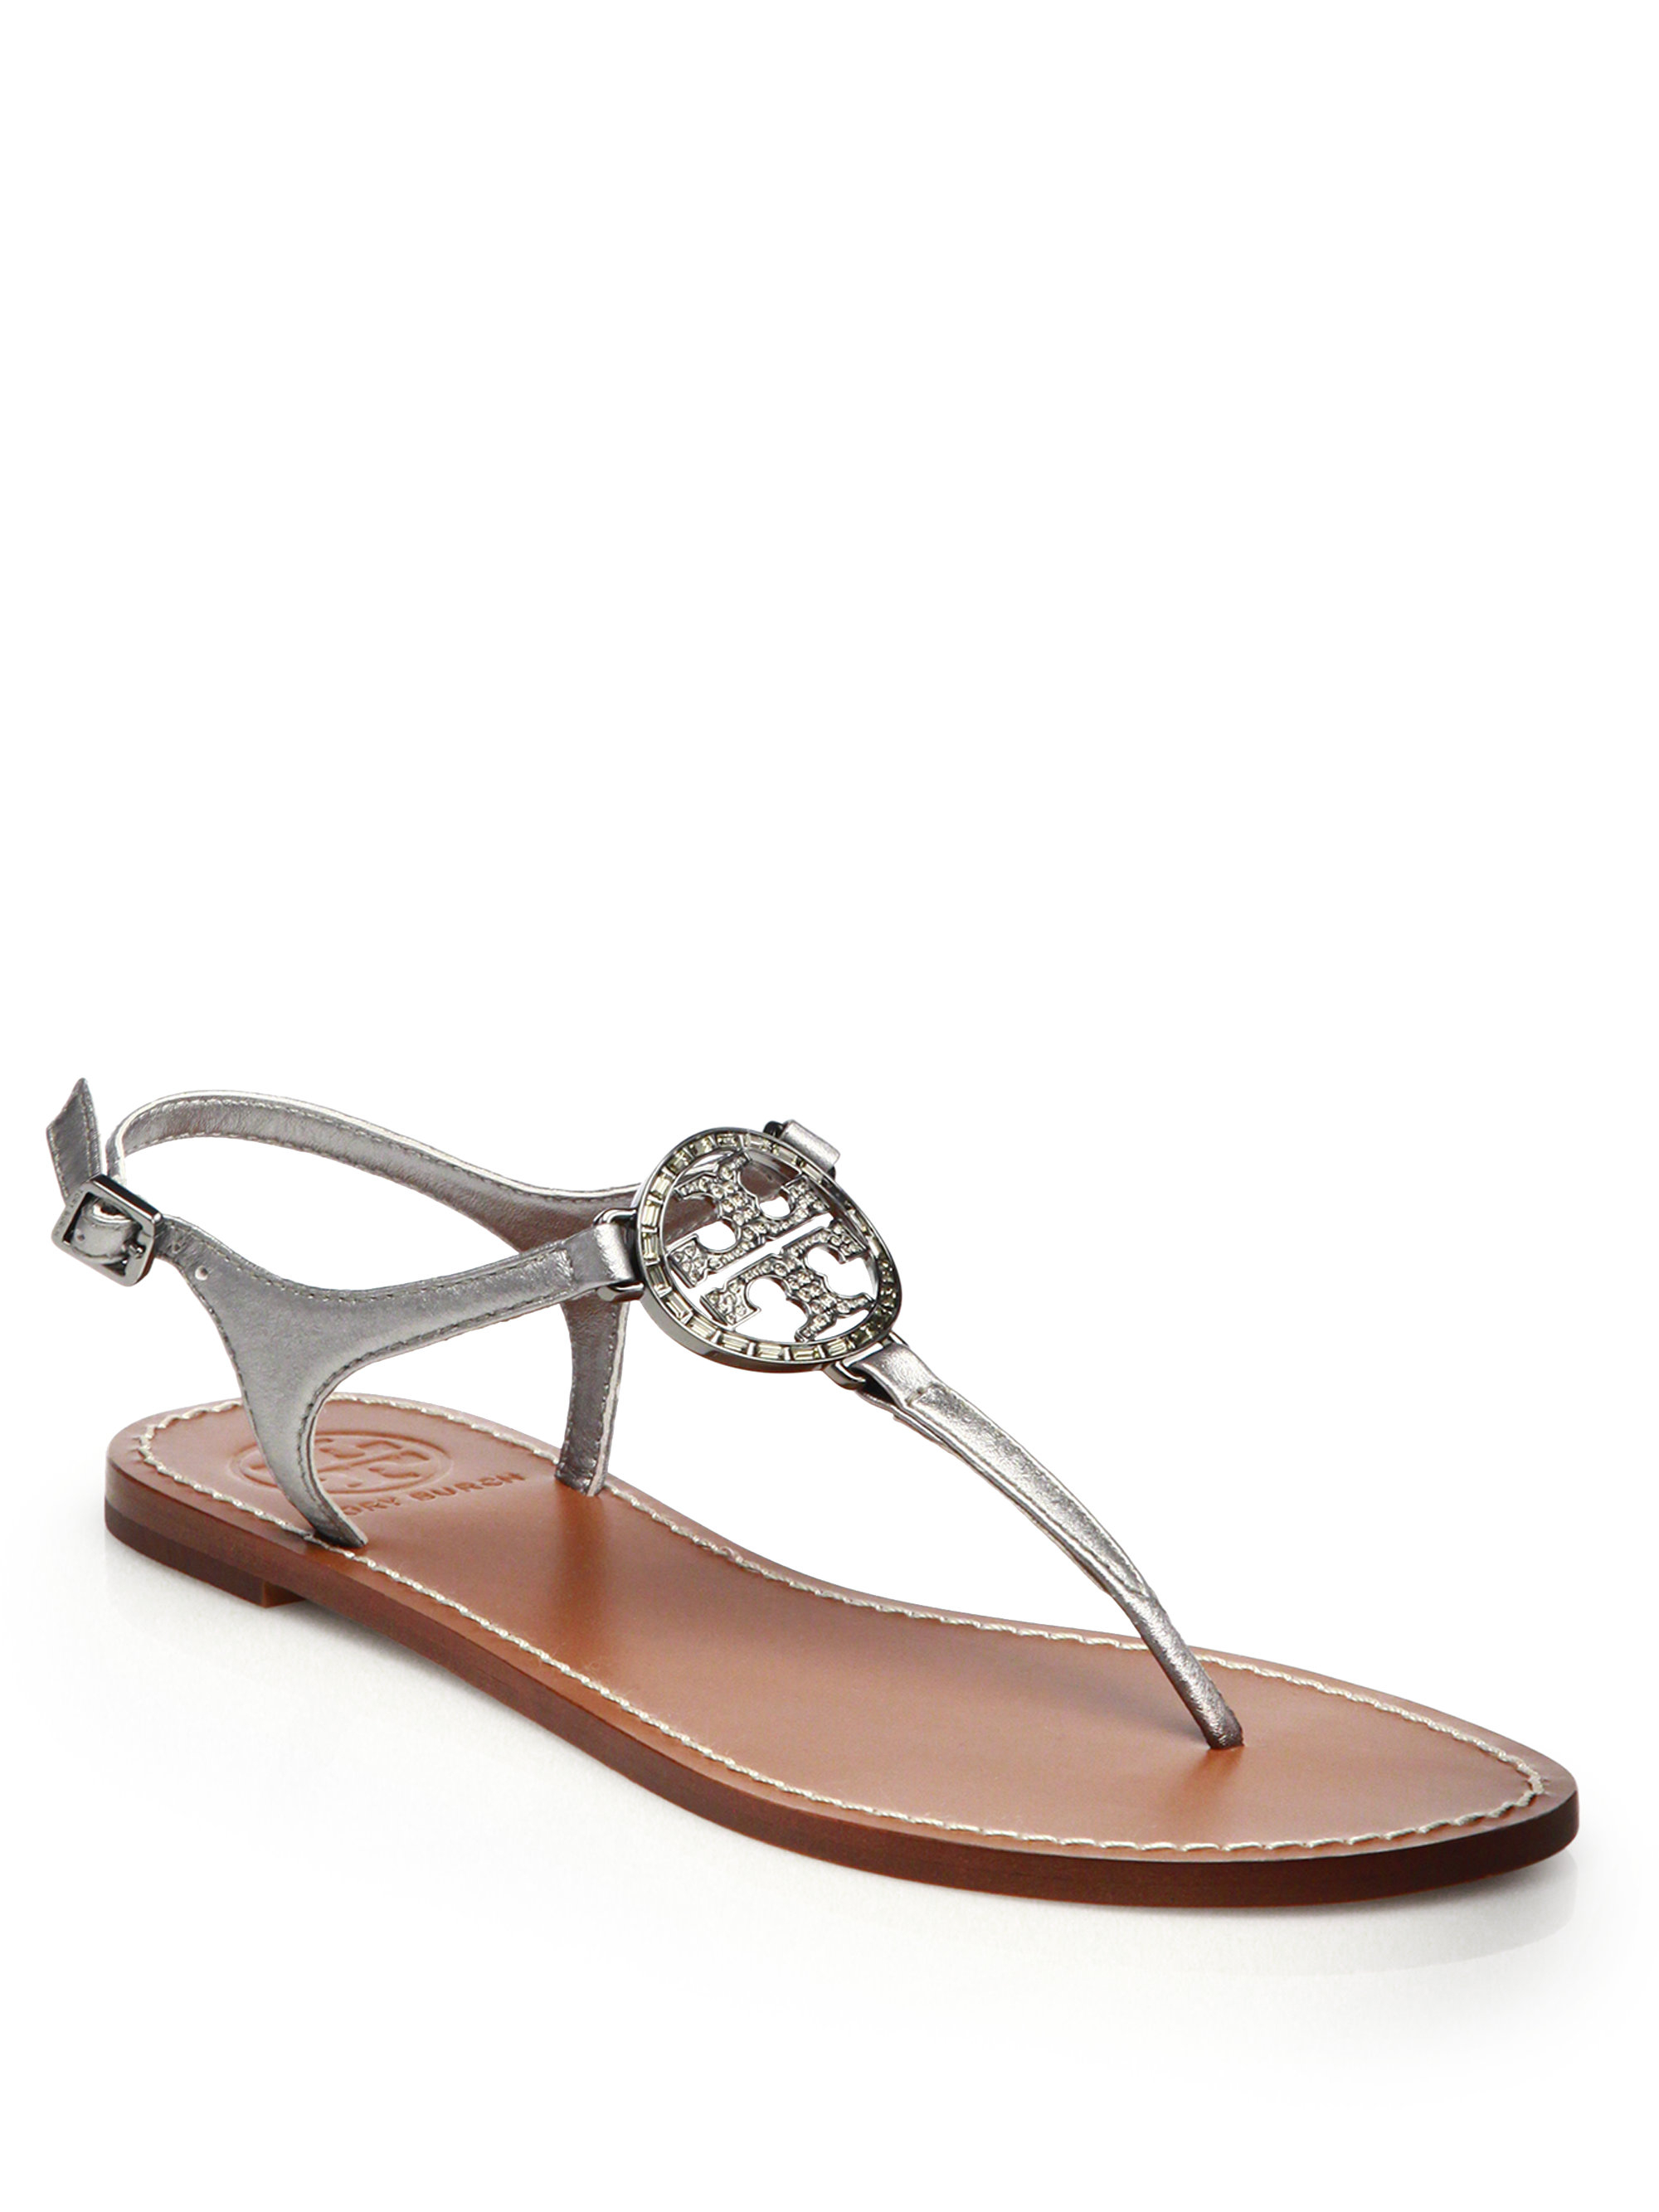 baf95fce88be Tory Burch Violet Metallic Leather Thong Sandals in Metallic - Lyst